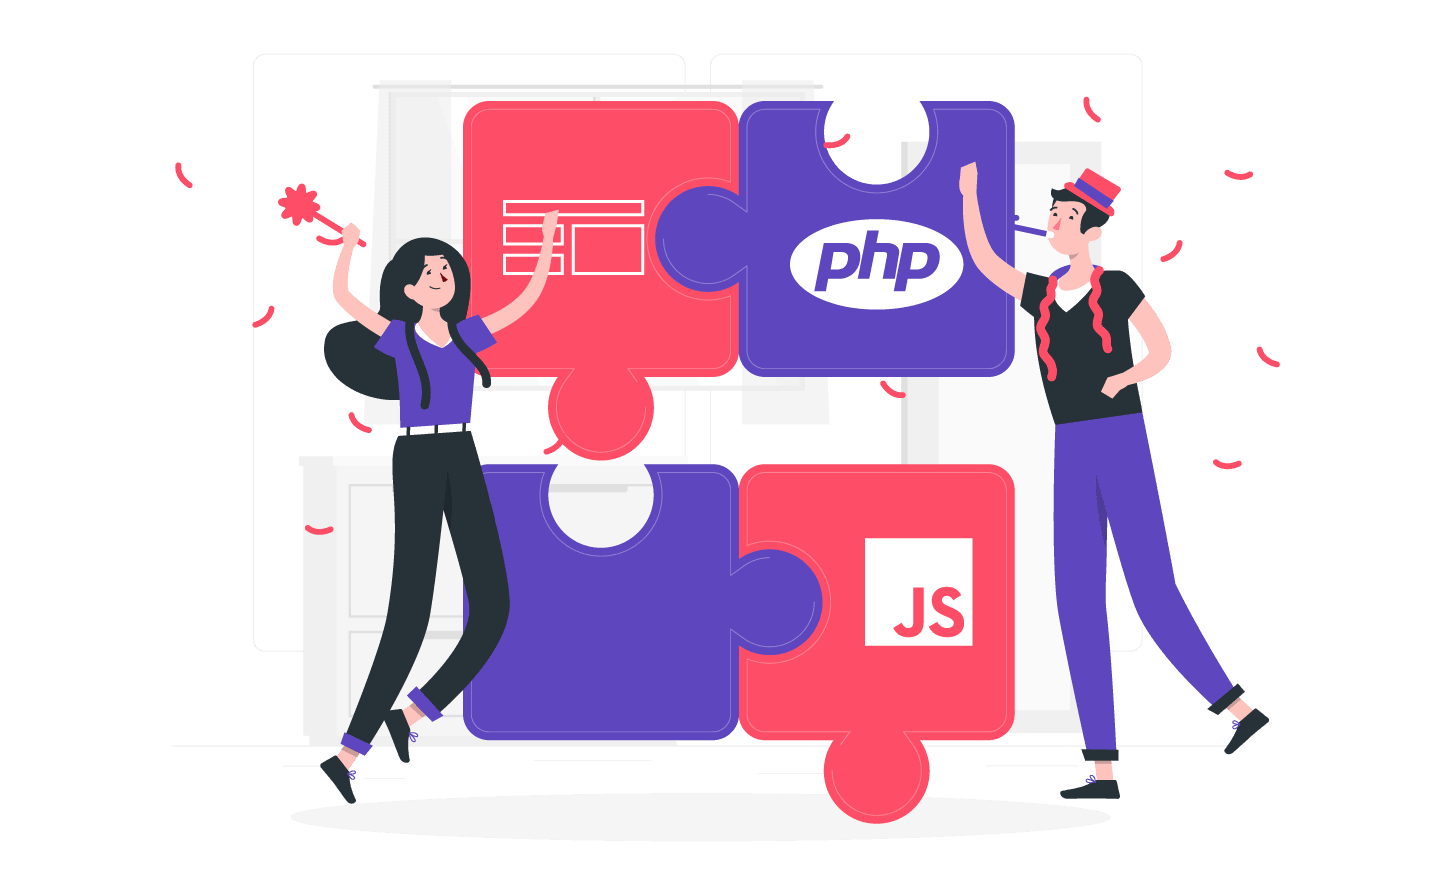 Illustration-for-the-joomla-page-php-js